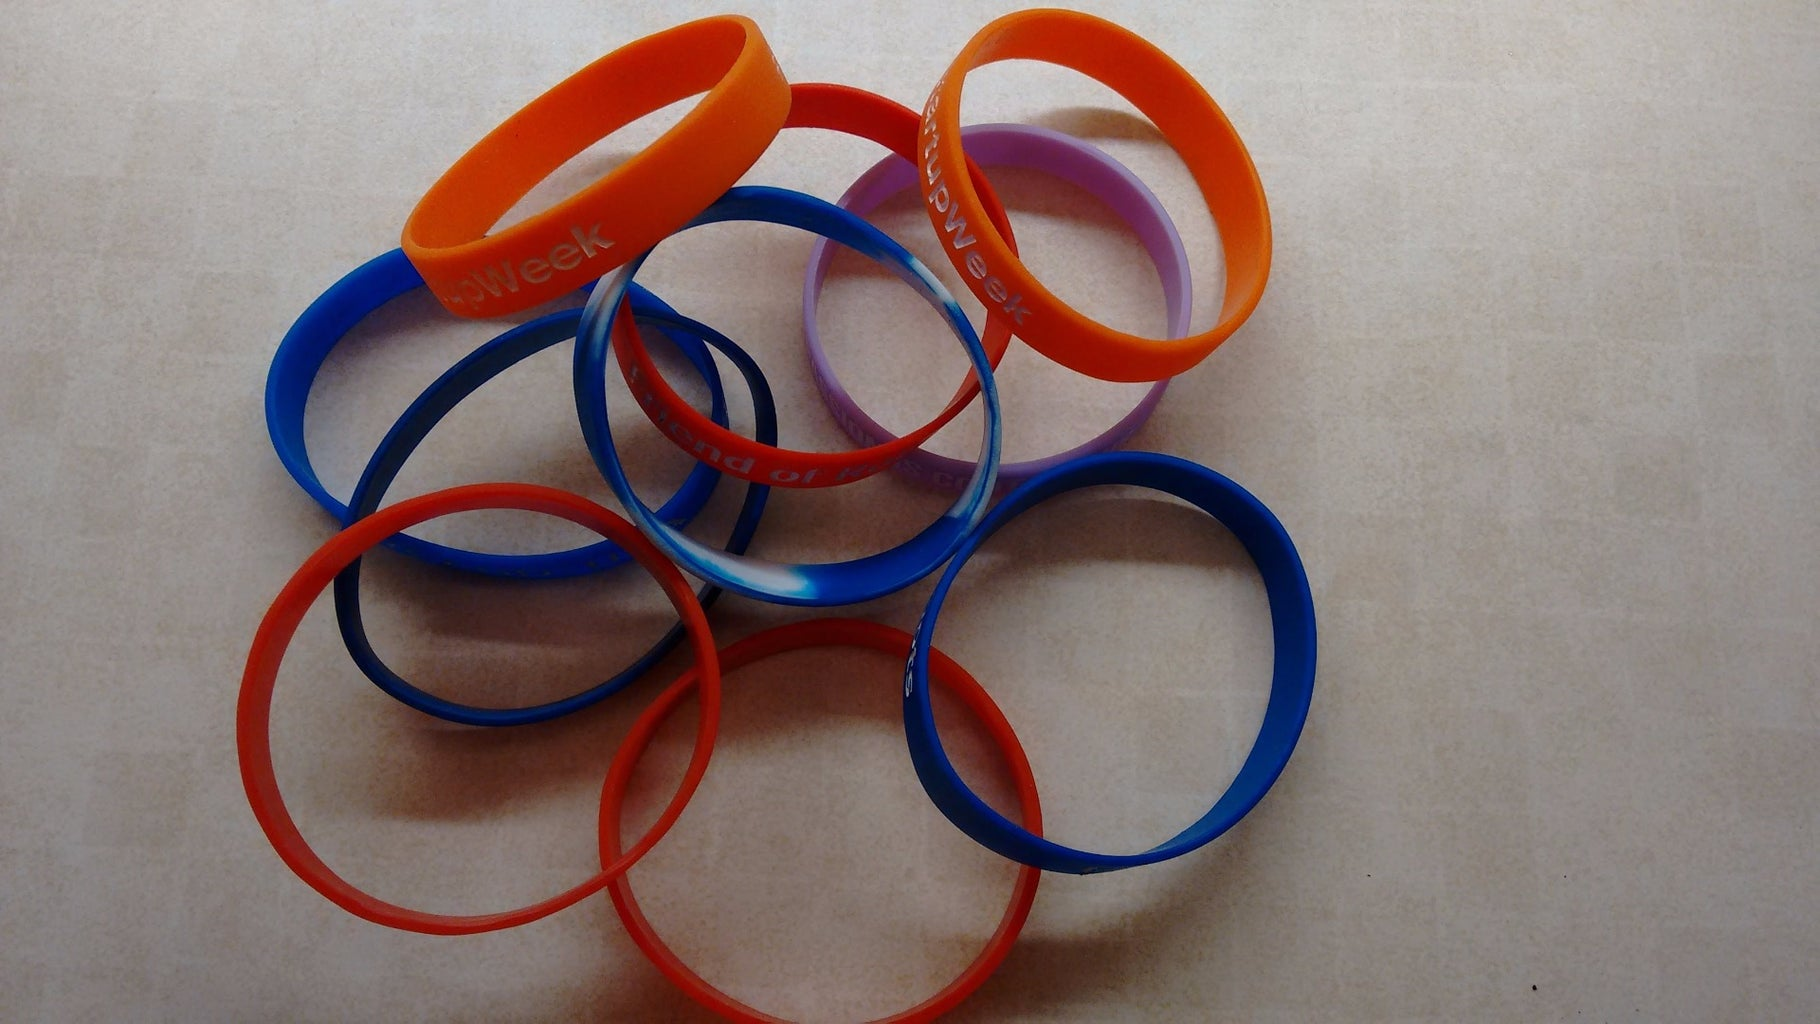 Itty-Bitty Bungees: Making Mini-Shock Cord From Rubber Wristbands